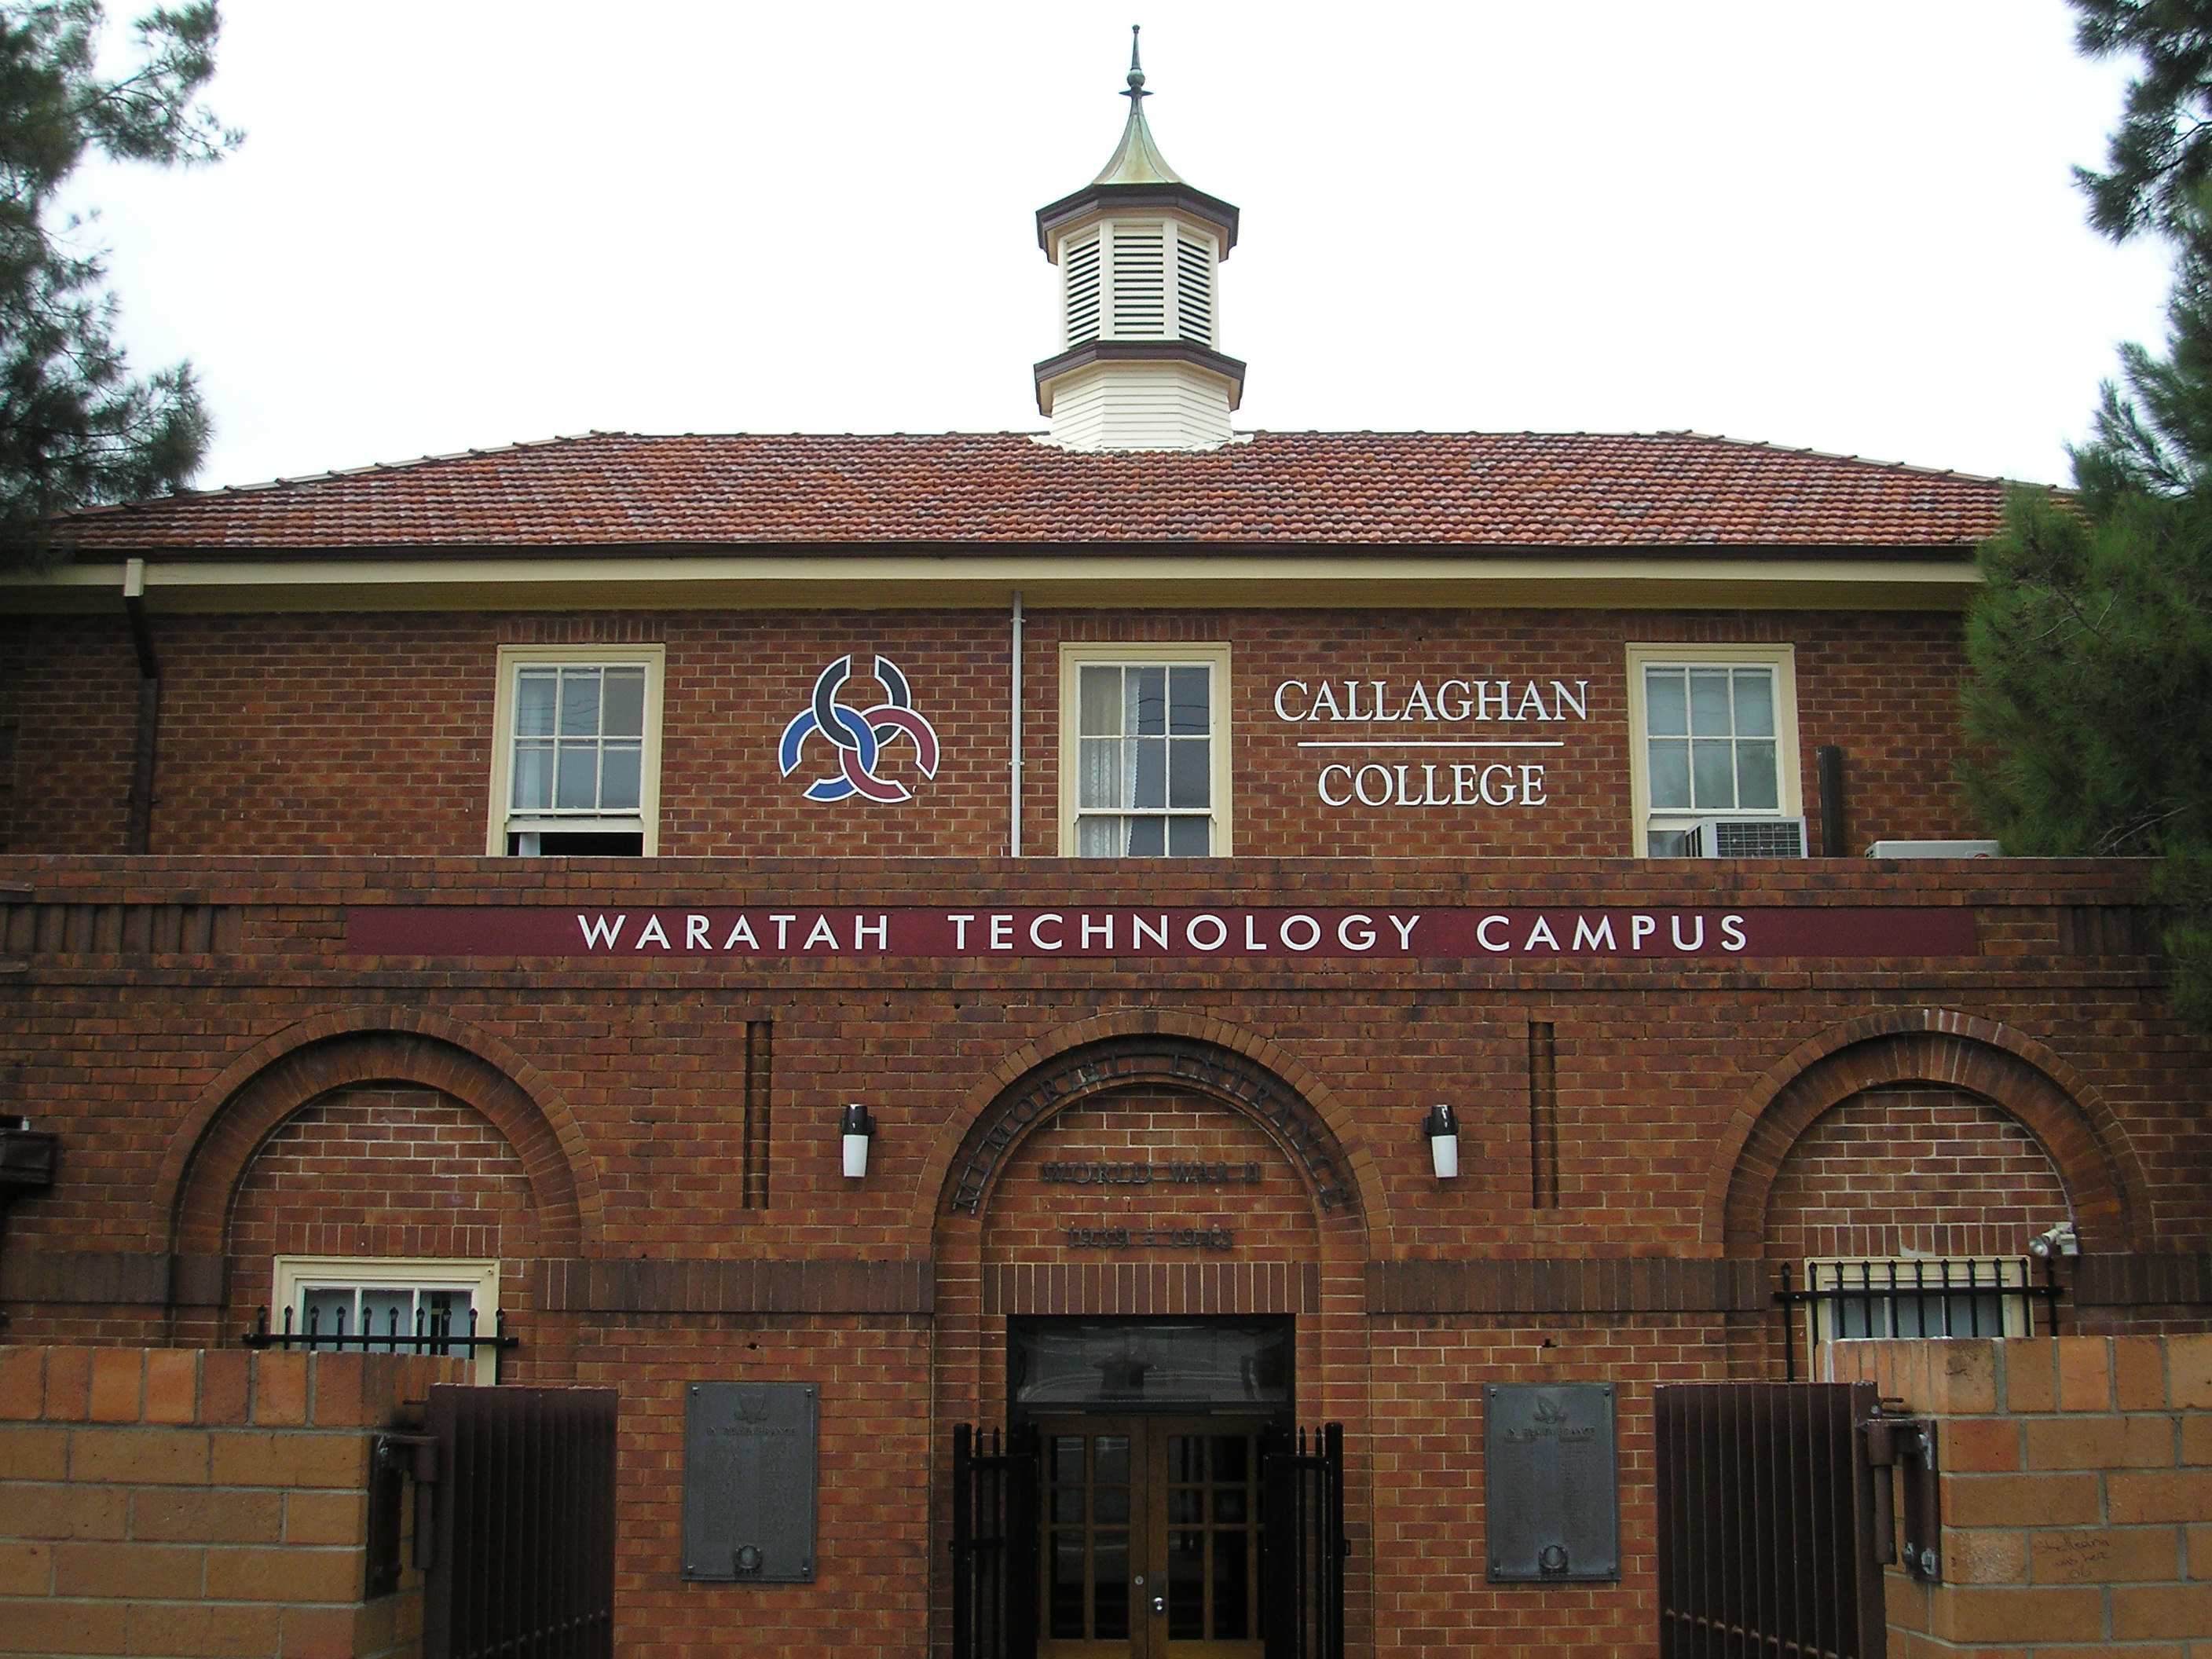 Callaghan College Waratah Technology Campus | Turton Road, Waratah, New South Wales 2298 | +61 2 4968 1939